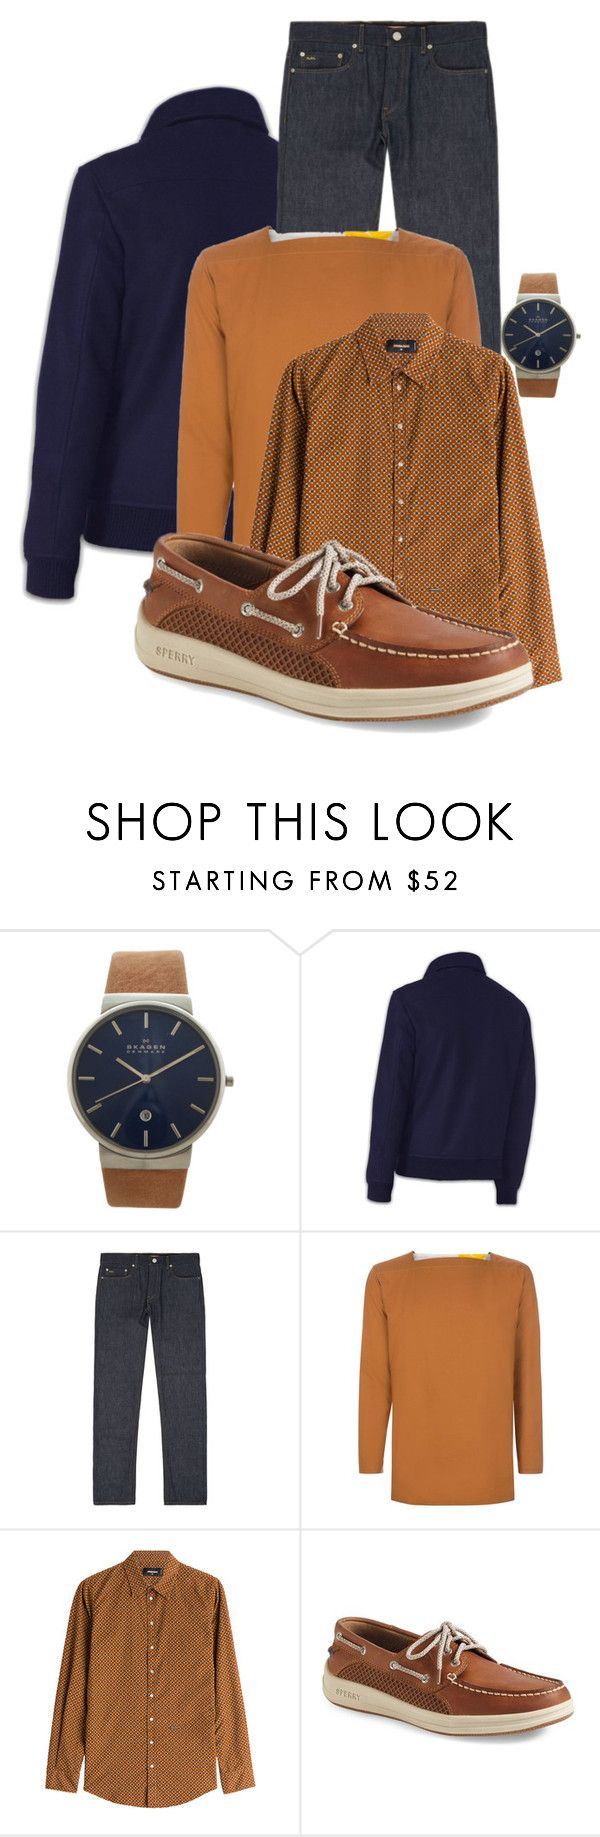 Menswear | Fall Casuals by simply-one on Polyvore featuring Dsquared2, Paul Smith, Michael Kors, Sperry, Skagen, men's fashion and menswear